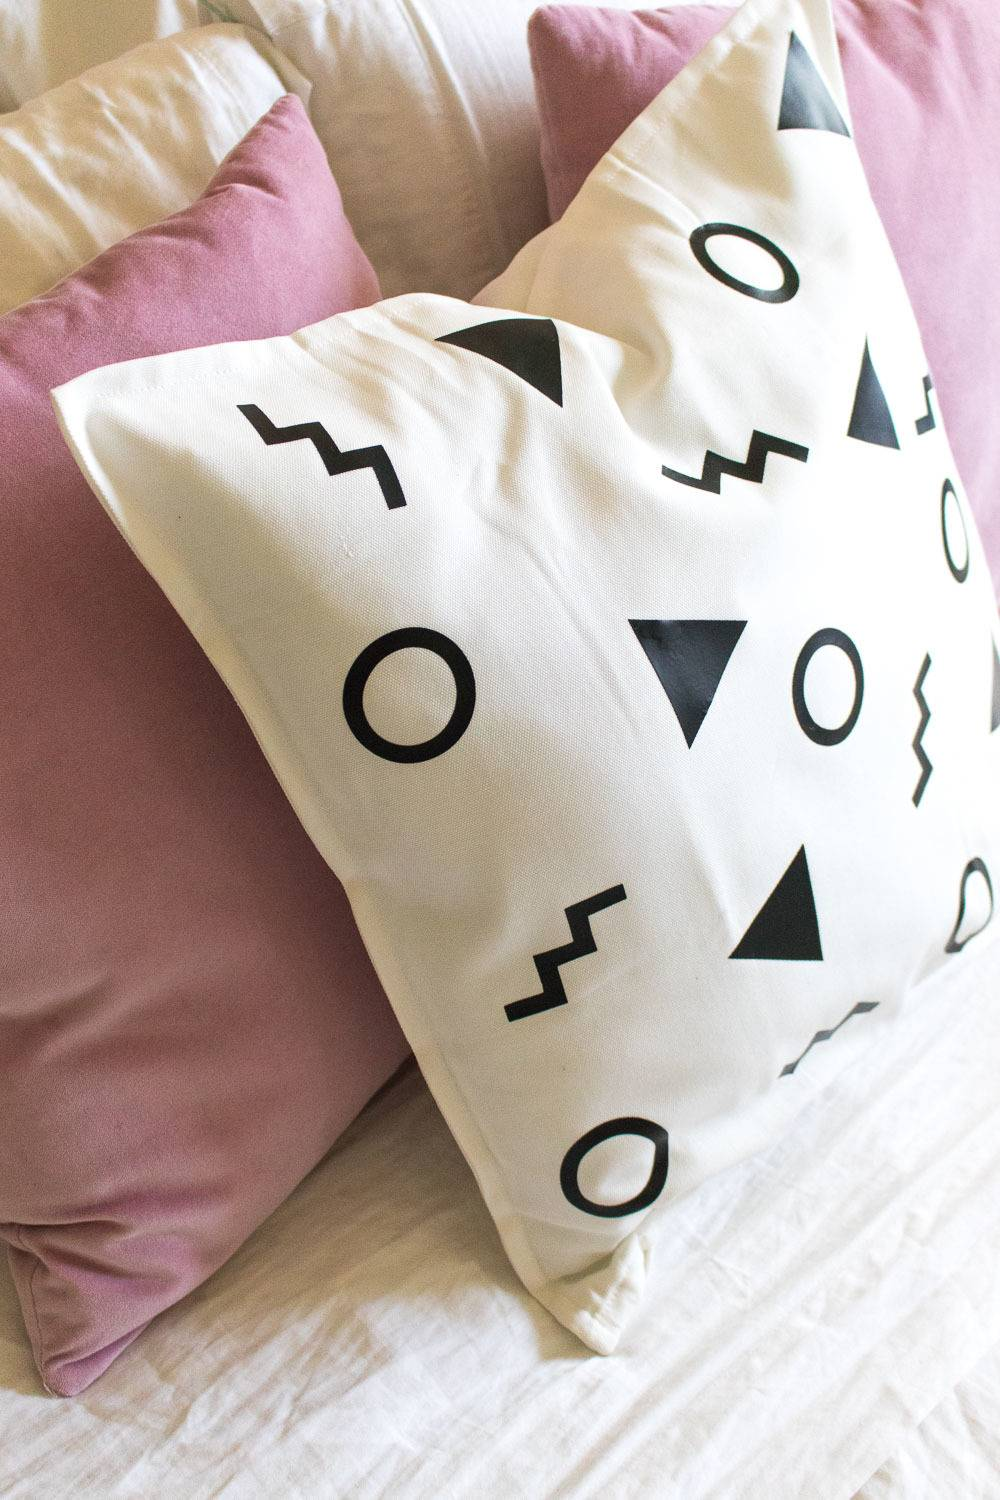 Abstract pillow project by Holly Wade, via Curbly